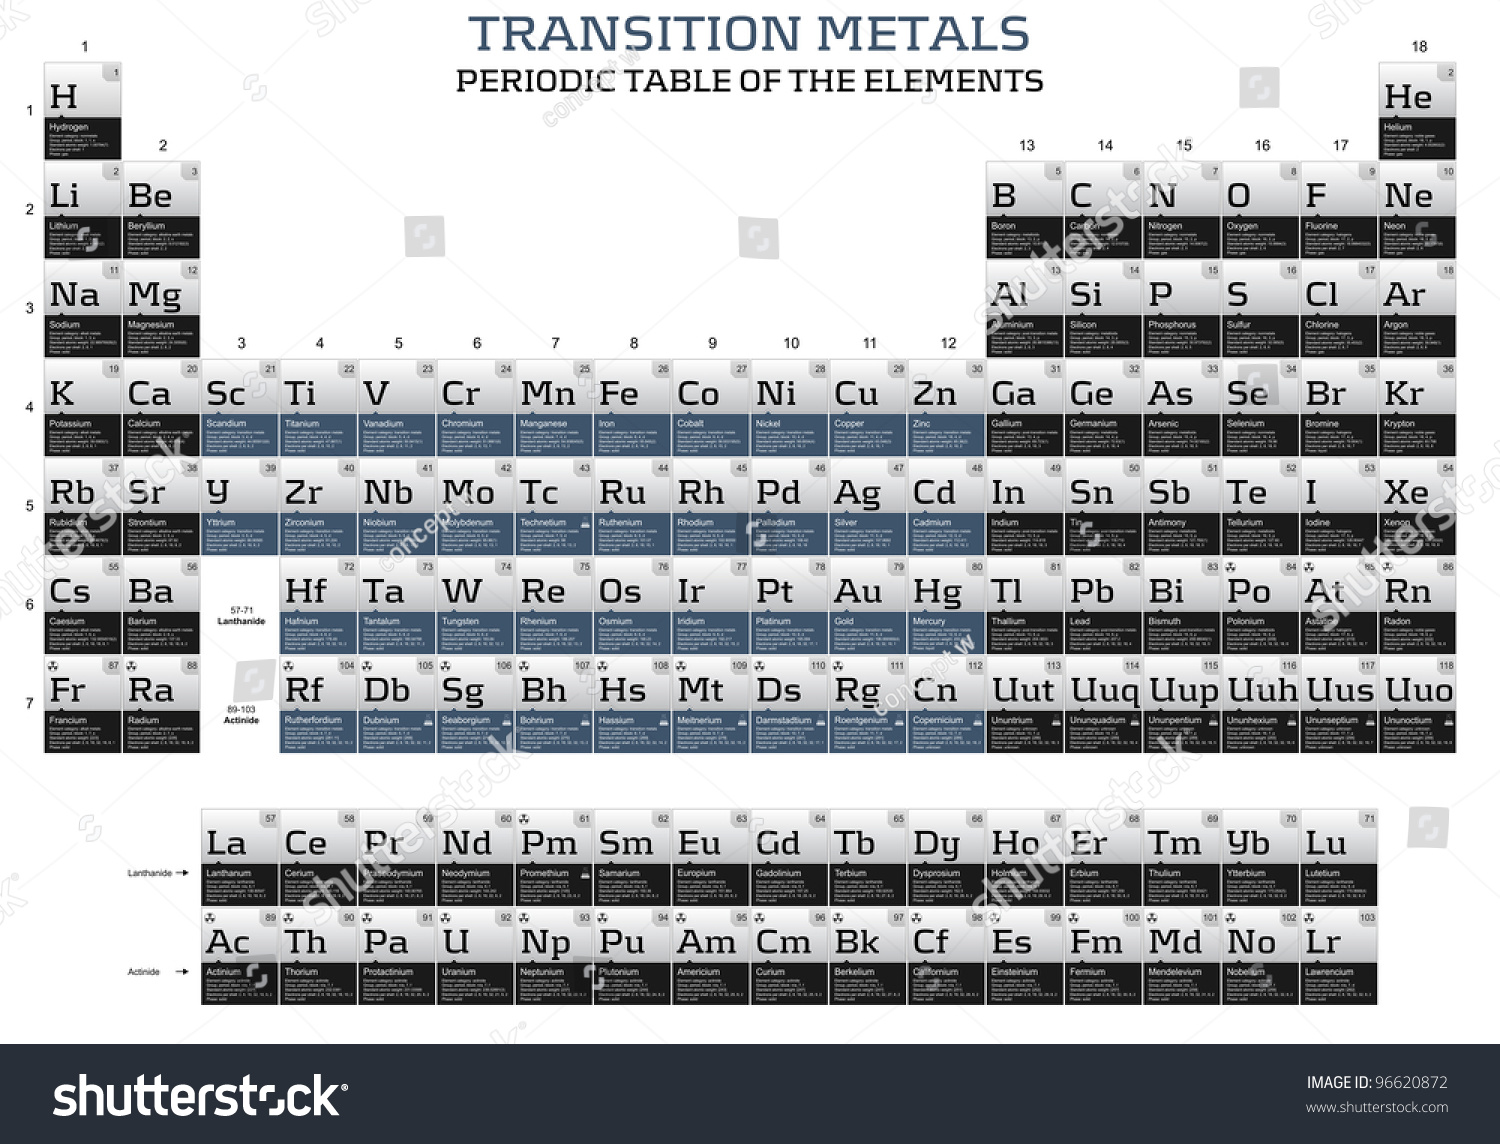 Periodic table lightest to heaviest image collections periodic poor metals periodic table choice image periodic table images periodic table of elements metals image collections gamestrikefo Choice Image